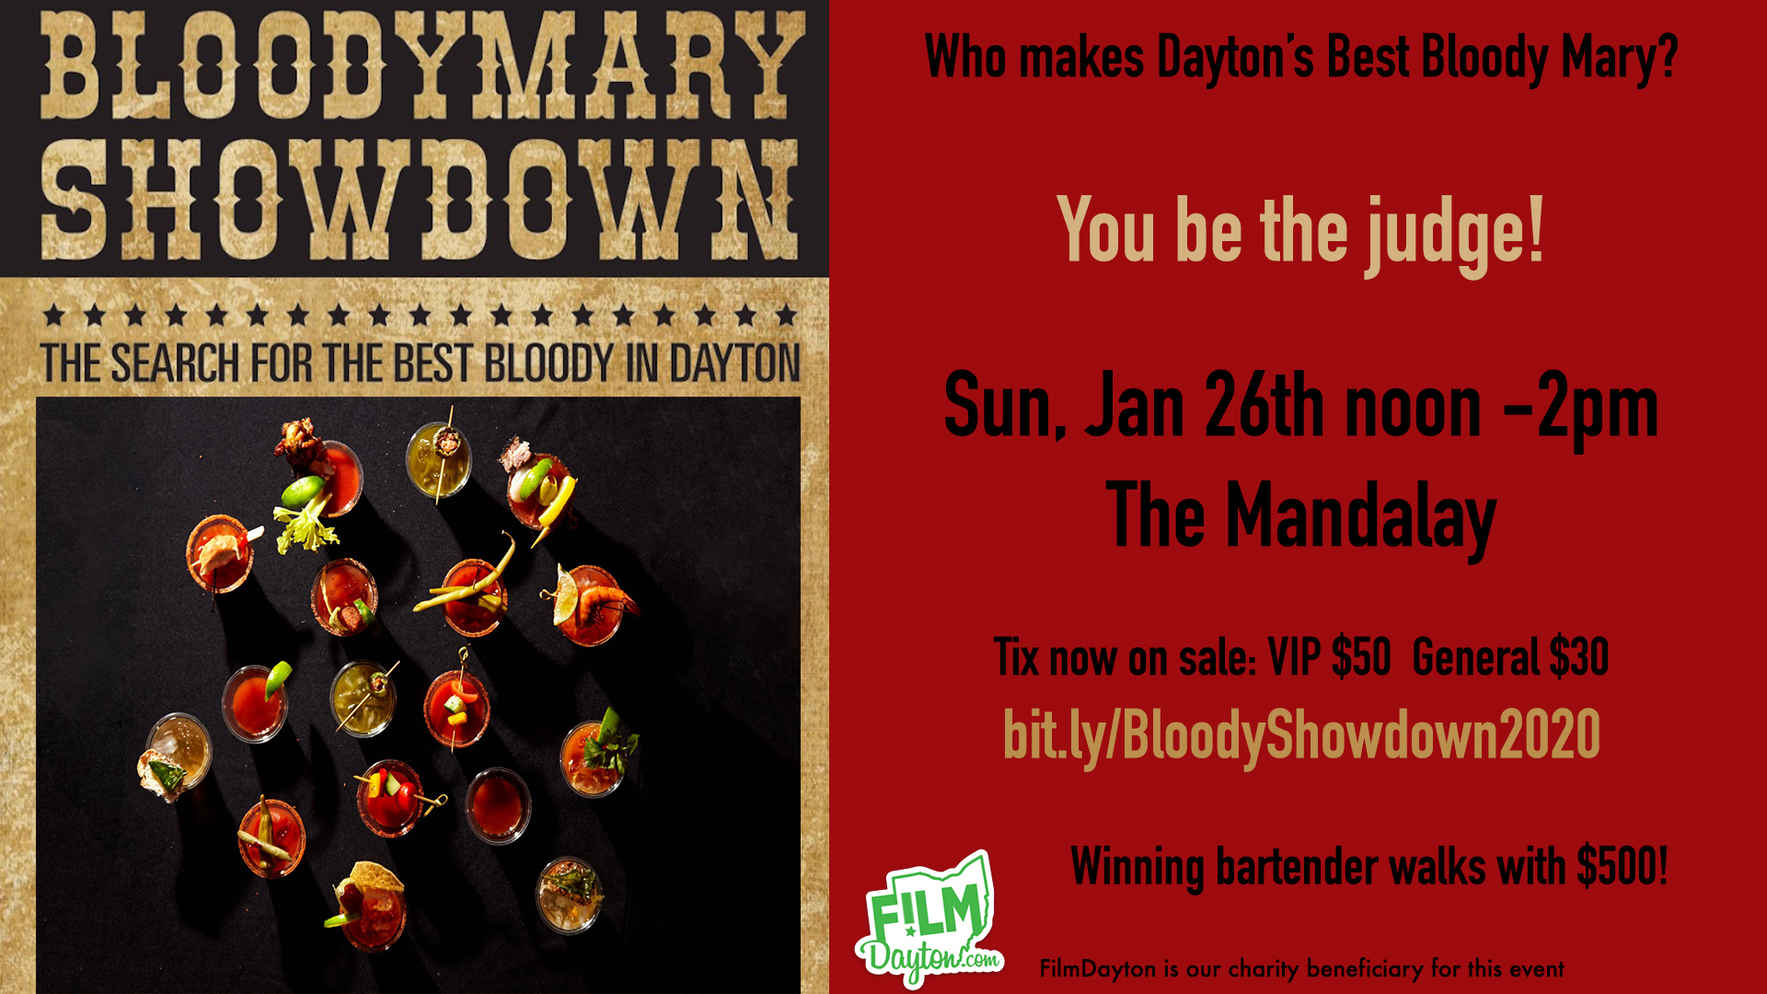 Bloody Mary Showdown 2020 image